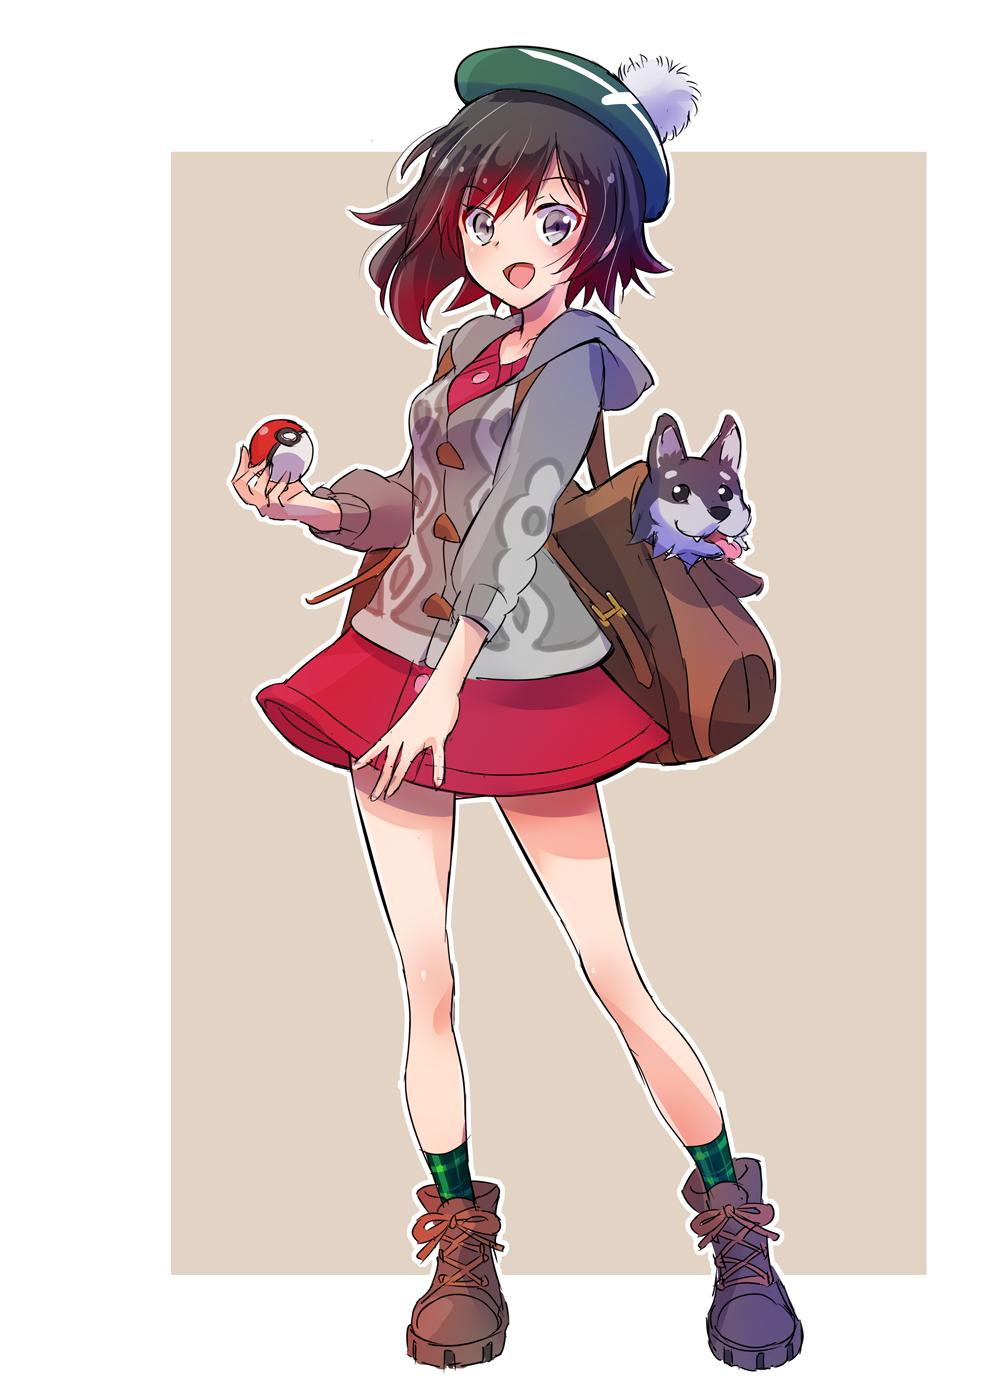 1girl backpack bag black_hair boots brown_footwear cardigan commentary_request creatures_(company) female_protagonist_(pokemon_swsh) female_protagonsit_(pokemon_swsh)_(cosplay) game_freak gradient_hair green_headwear grey_eyes hat highres iesupa long_sleeves mikumikudance multicolored_hair nintendo poke_ball pokemon pokemon_(game) pokemon_swsh red_skirt redhead ruby_rose rwby short_hair skirt socks solo tam_o'_shanter two-tone_hair zwei_(rwby)